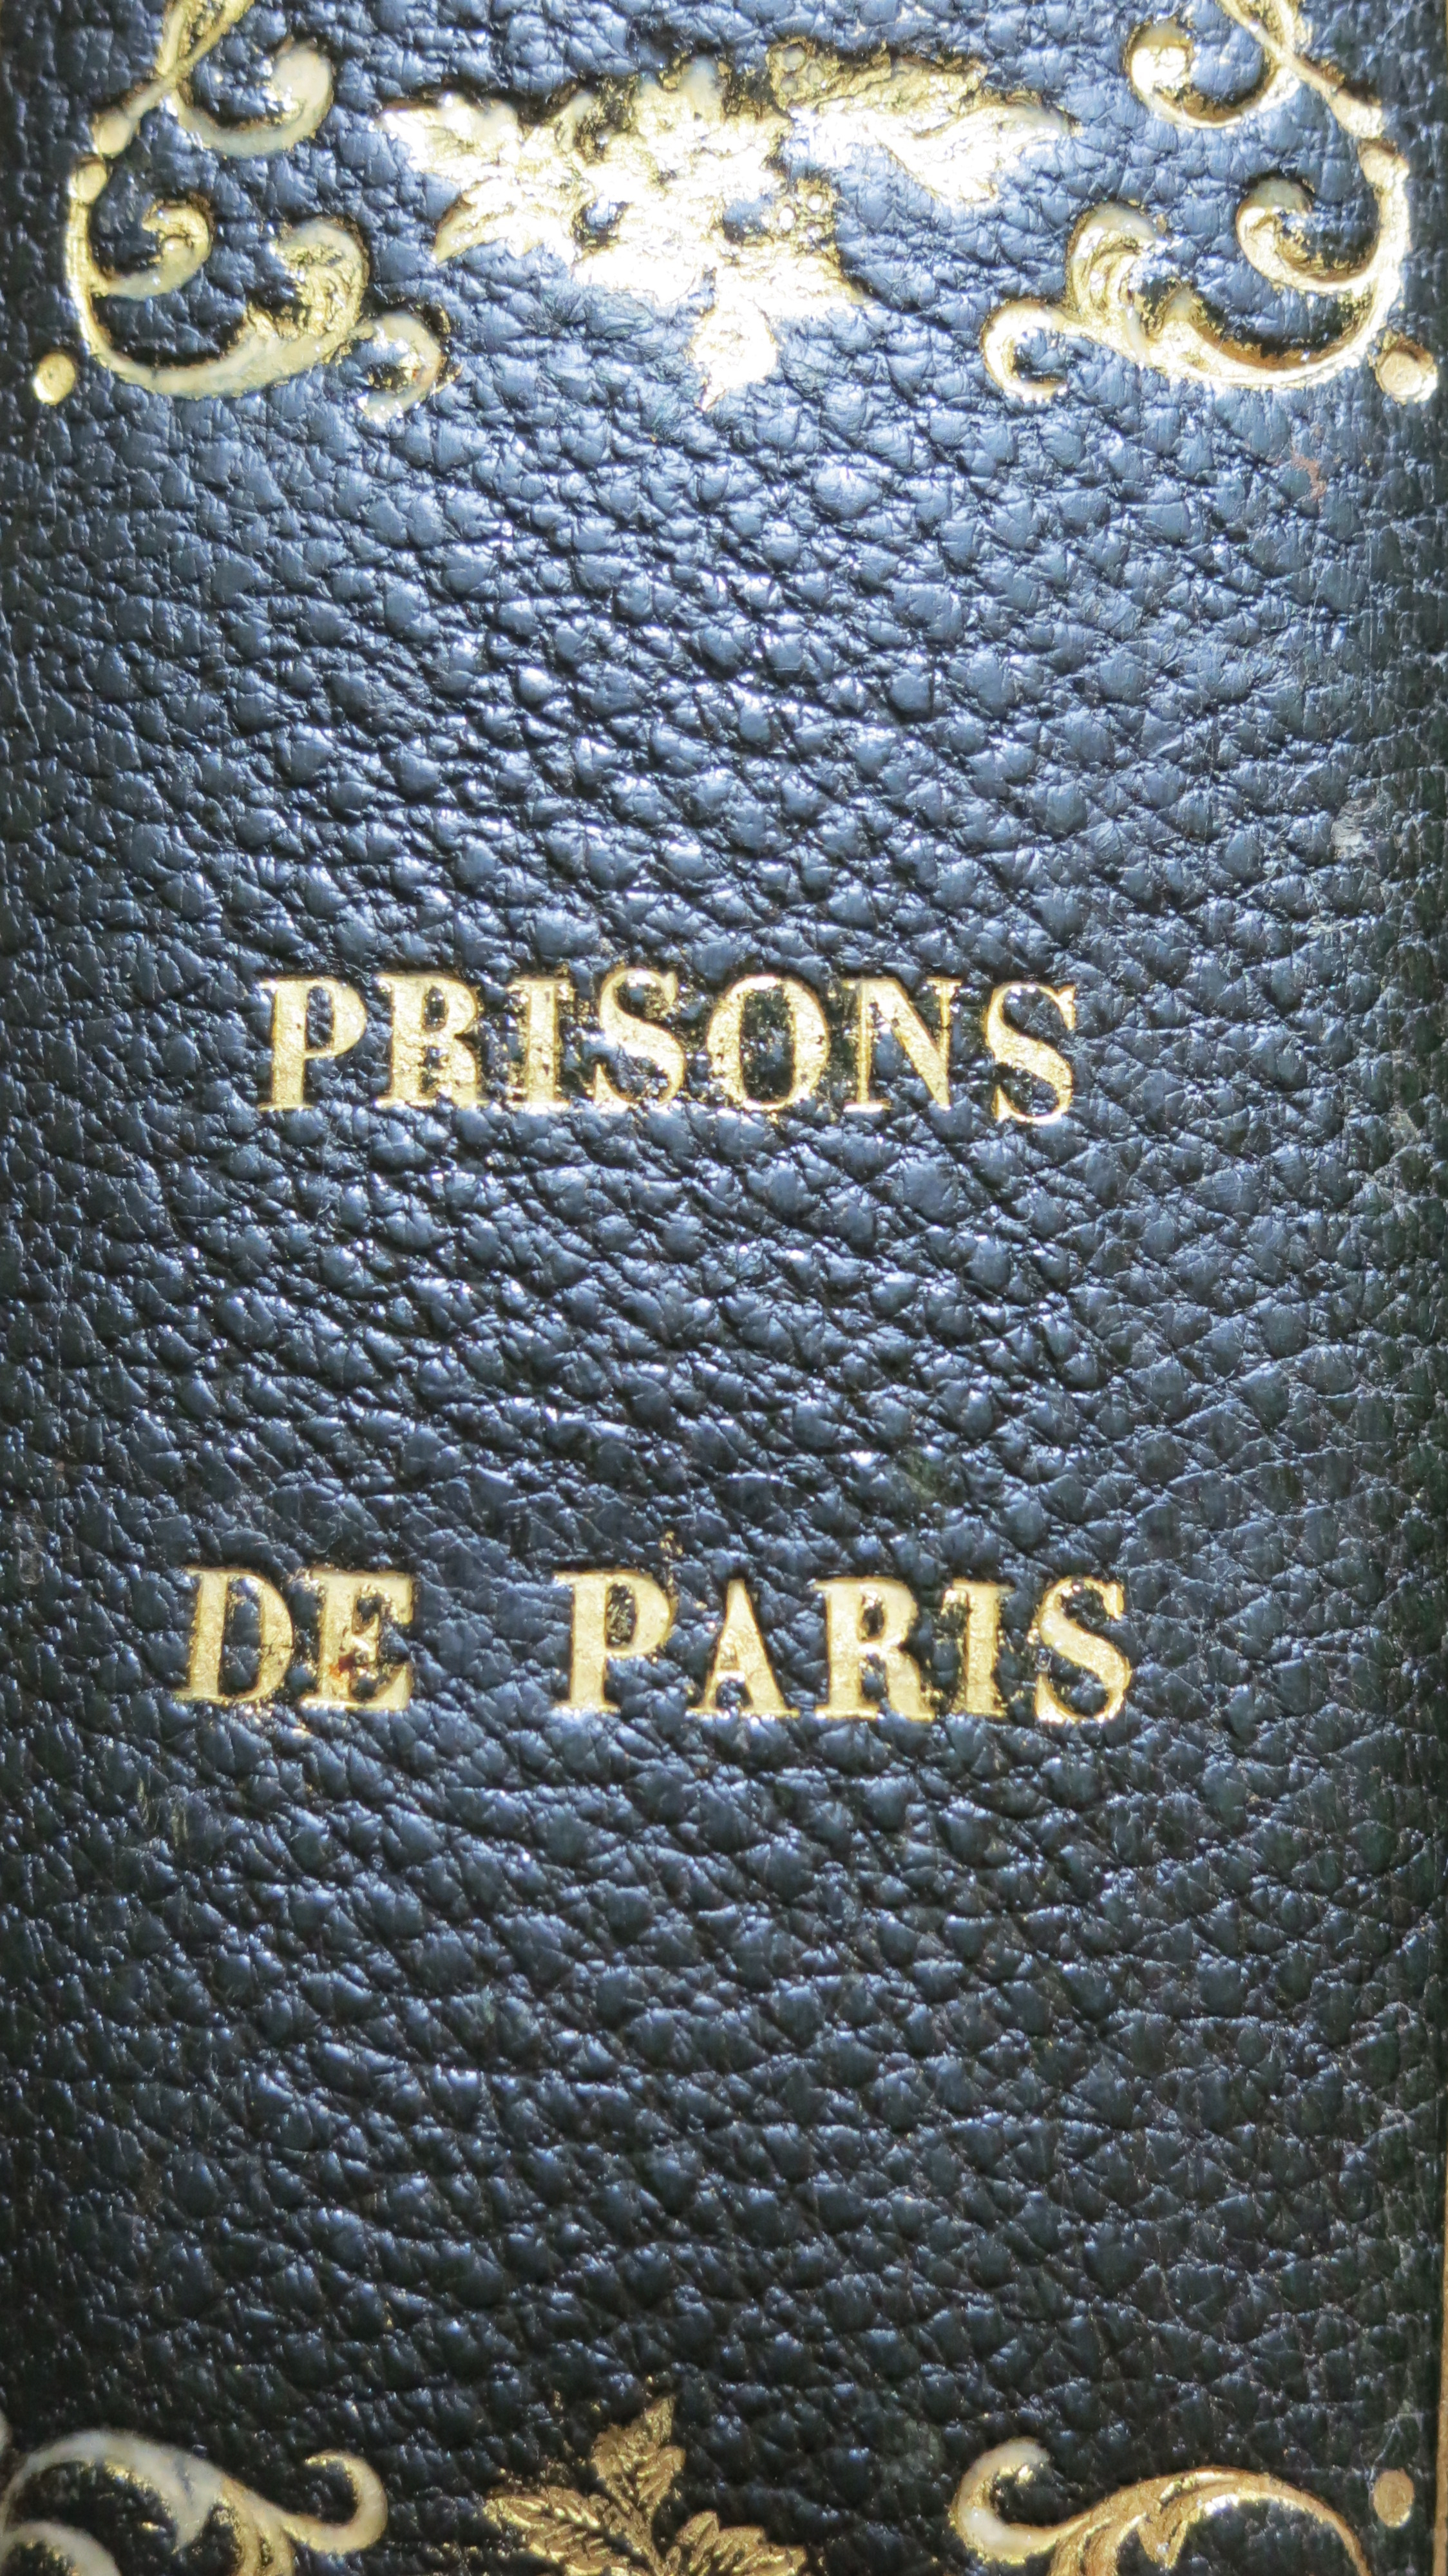 Les Prisons de Paris